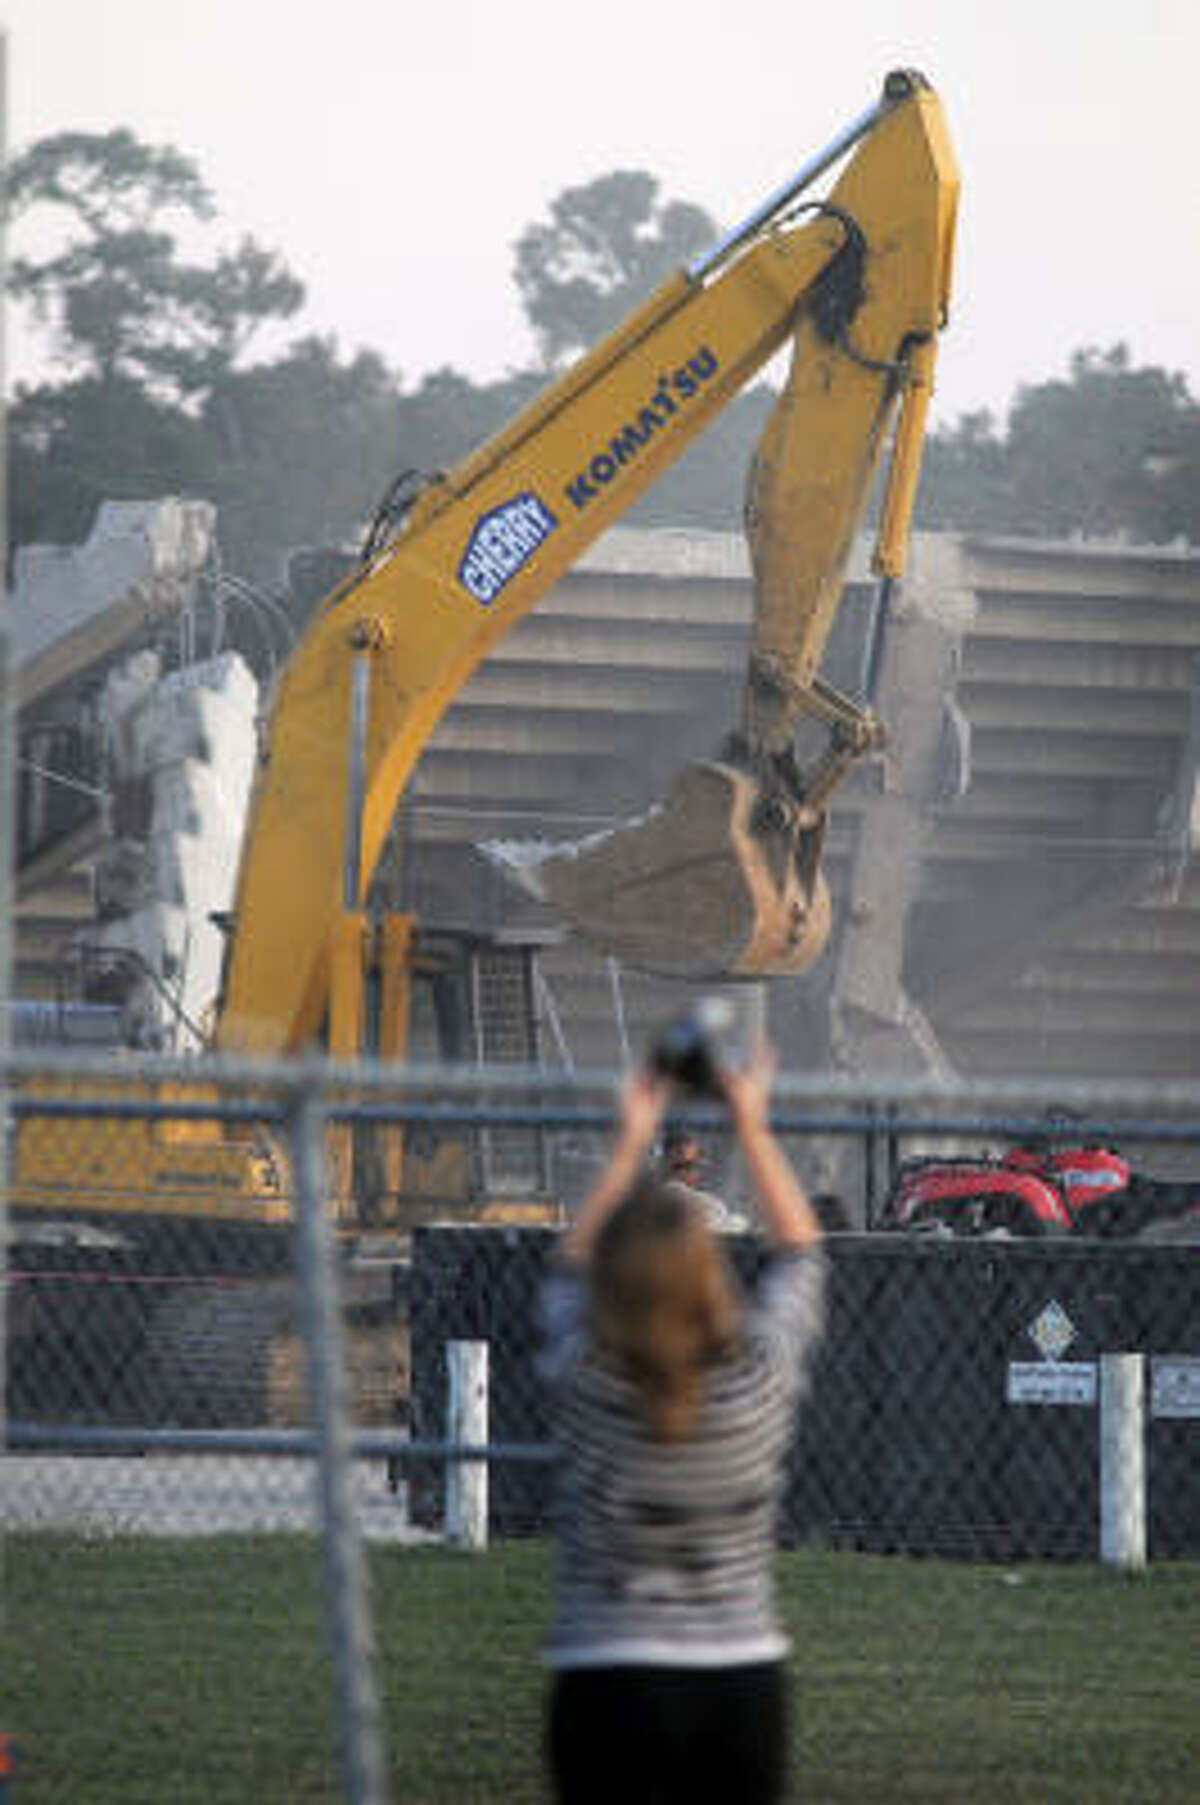 Michelle Cole of Humble ISD geta a photo of the demolition.